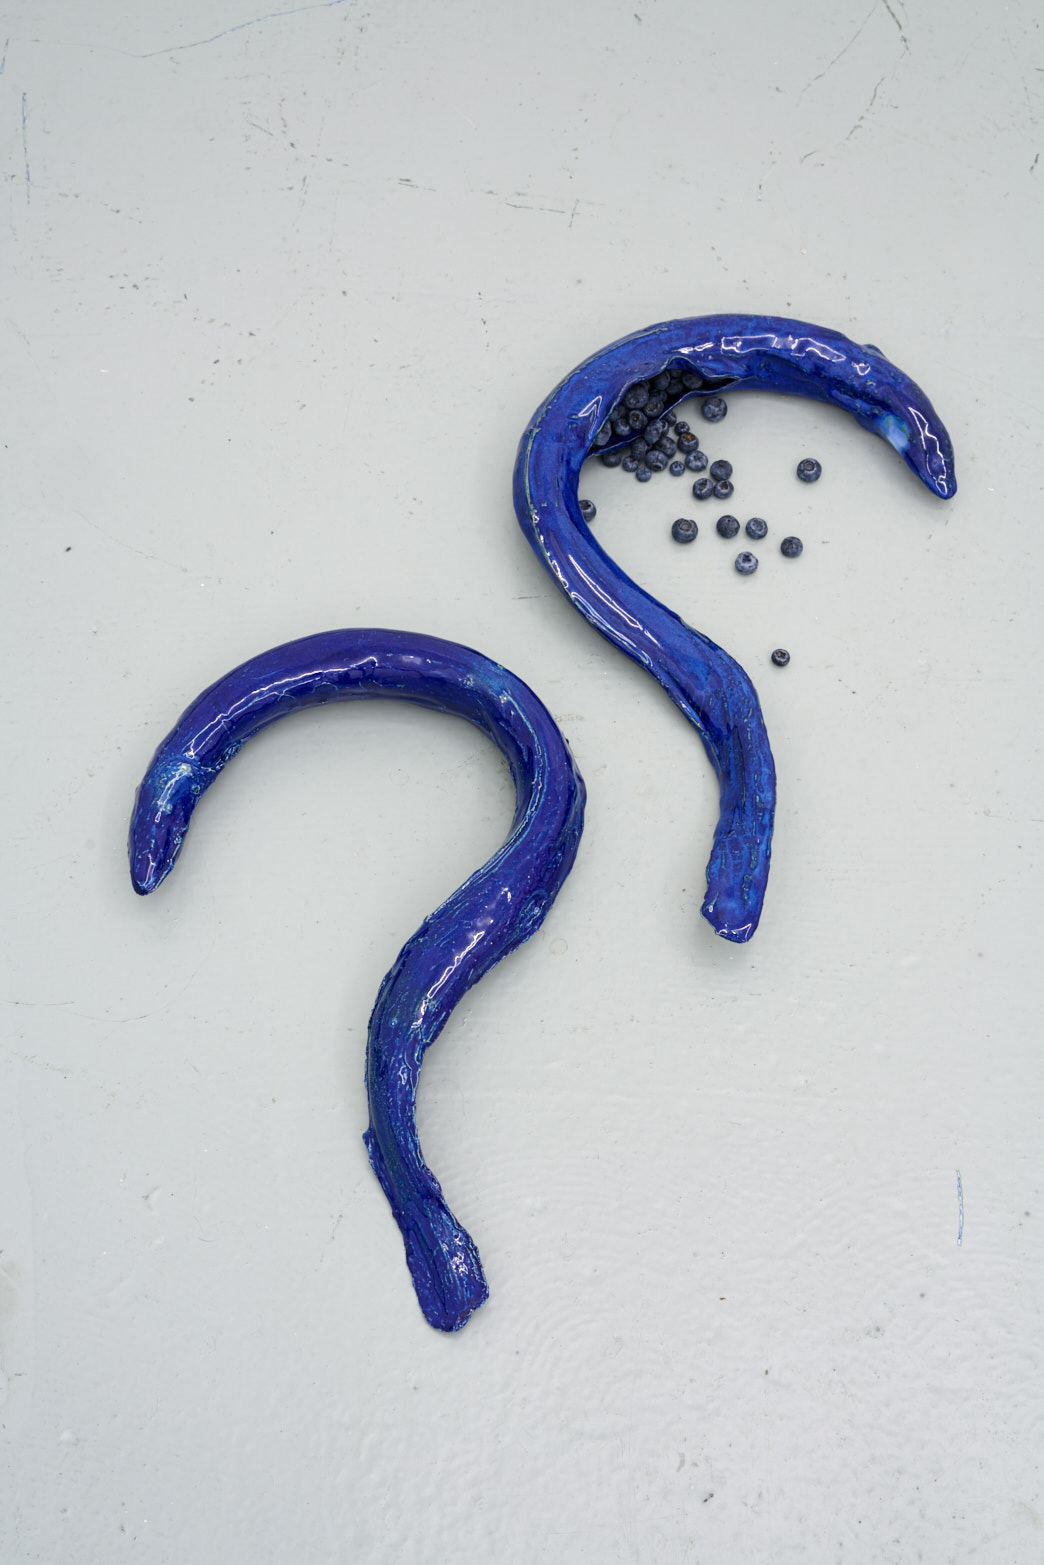 Paloma Proudfoot, The Anthropophagous Stage, 2018, Glazed stoneware, blueberries, photo: Original&theCopy